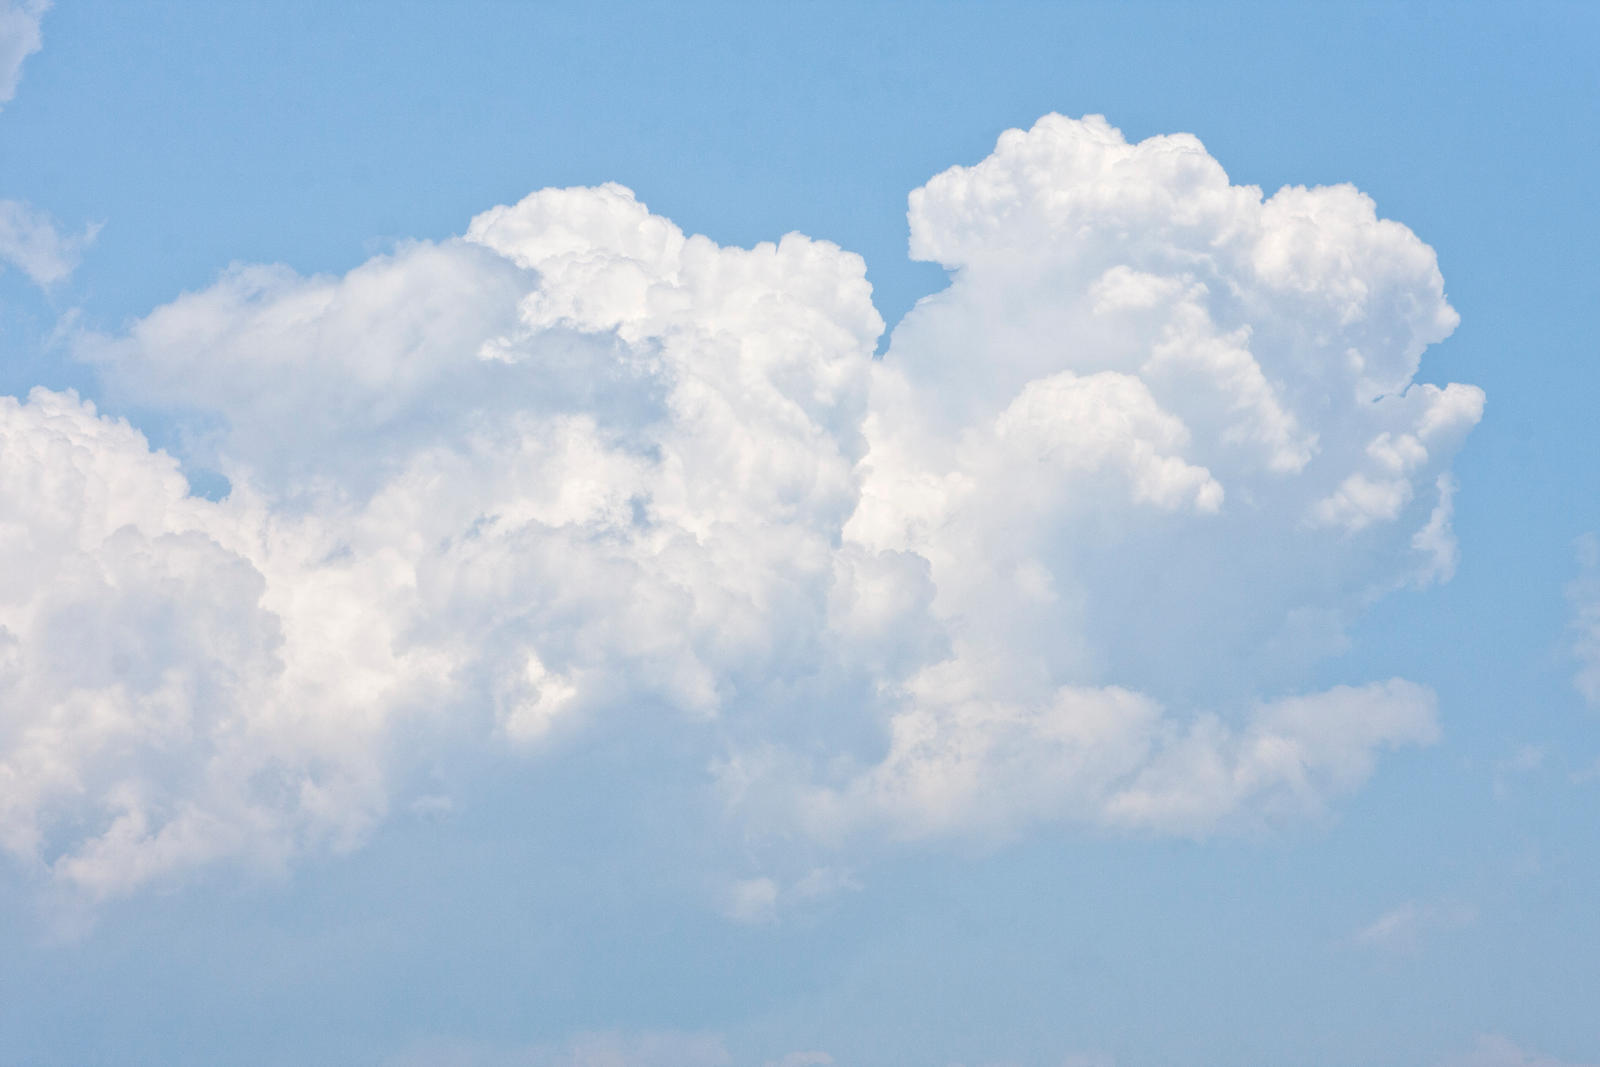 Puffy White Cloud by muffet1 on DeviantArt